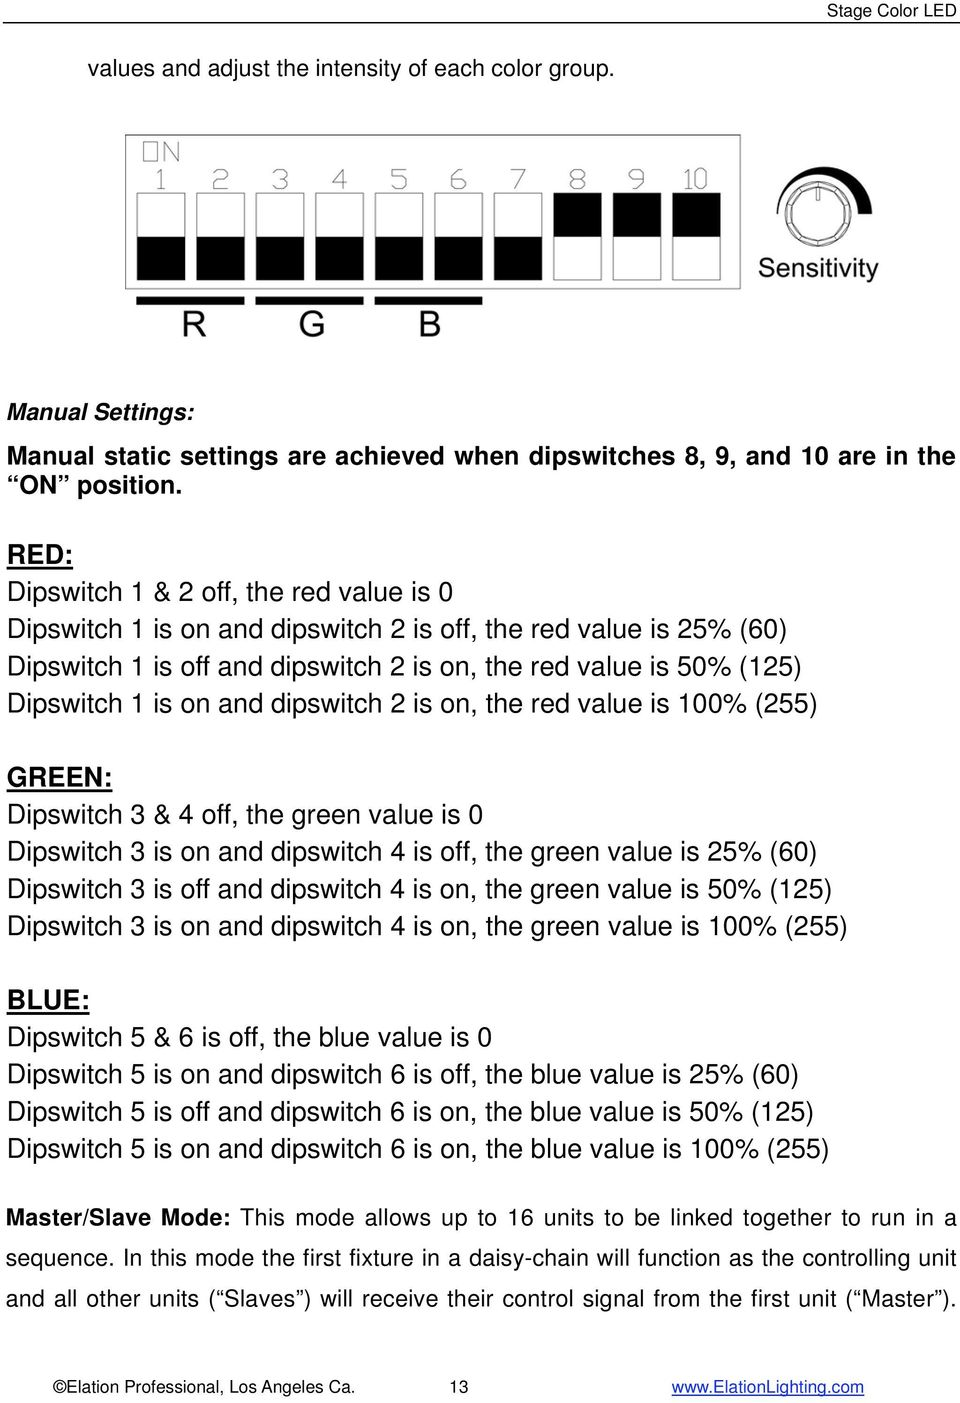 and dipswitch 2 is on, the red value is 100% (255) GREEN: Dipswitch 3 & 4 off, the green value is 0 Dipswitch 3 is on and dipswitch 4 is off, the green value is 25% (60) Dipswitch 3 is off and